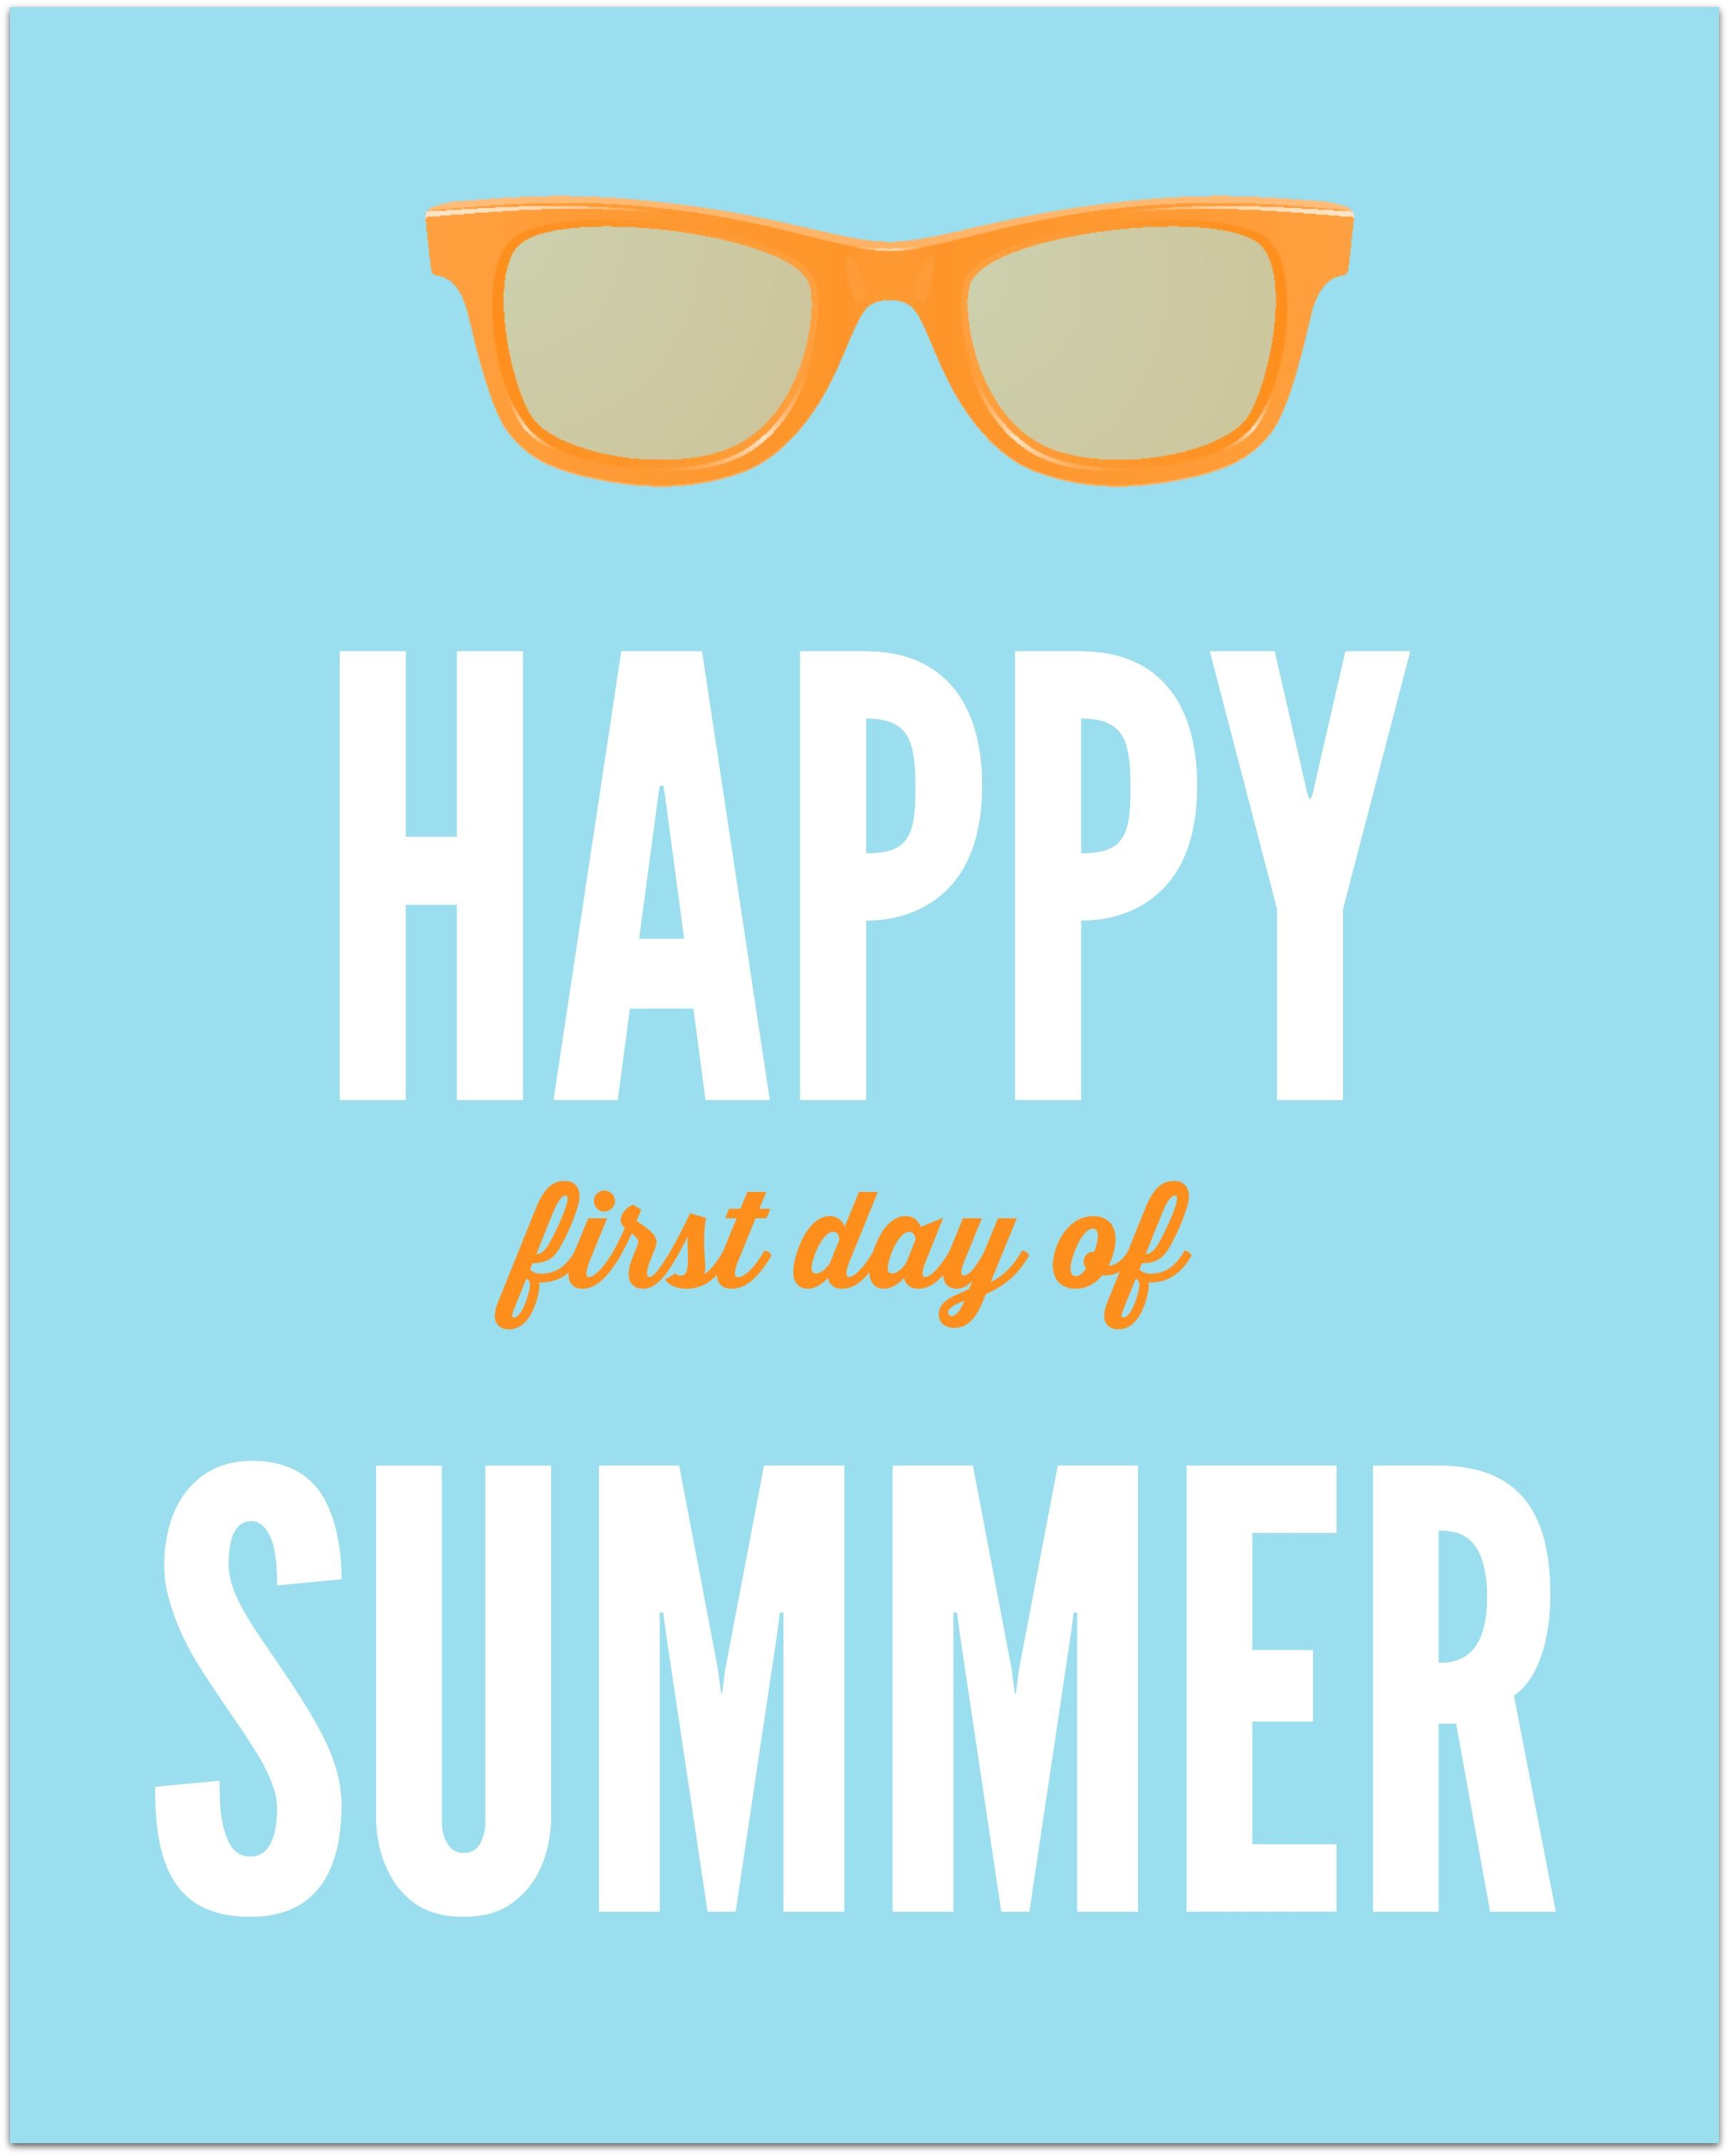 How To Celebrate The First Day Of Summer With Images